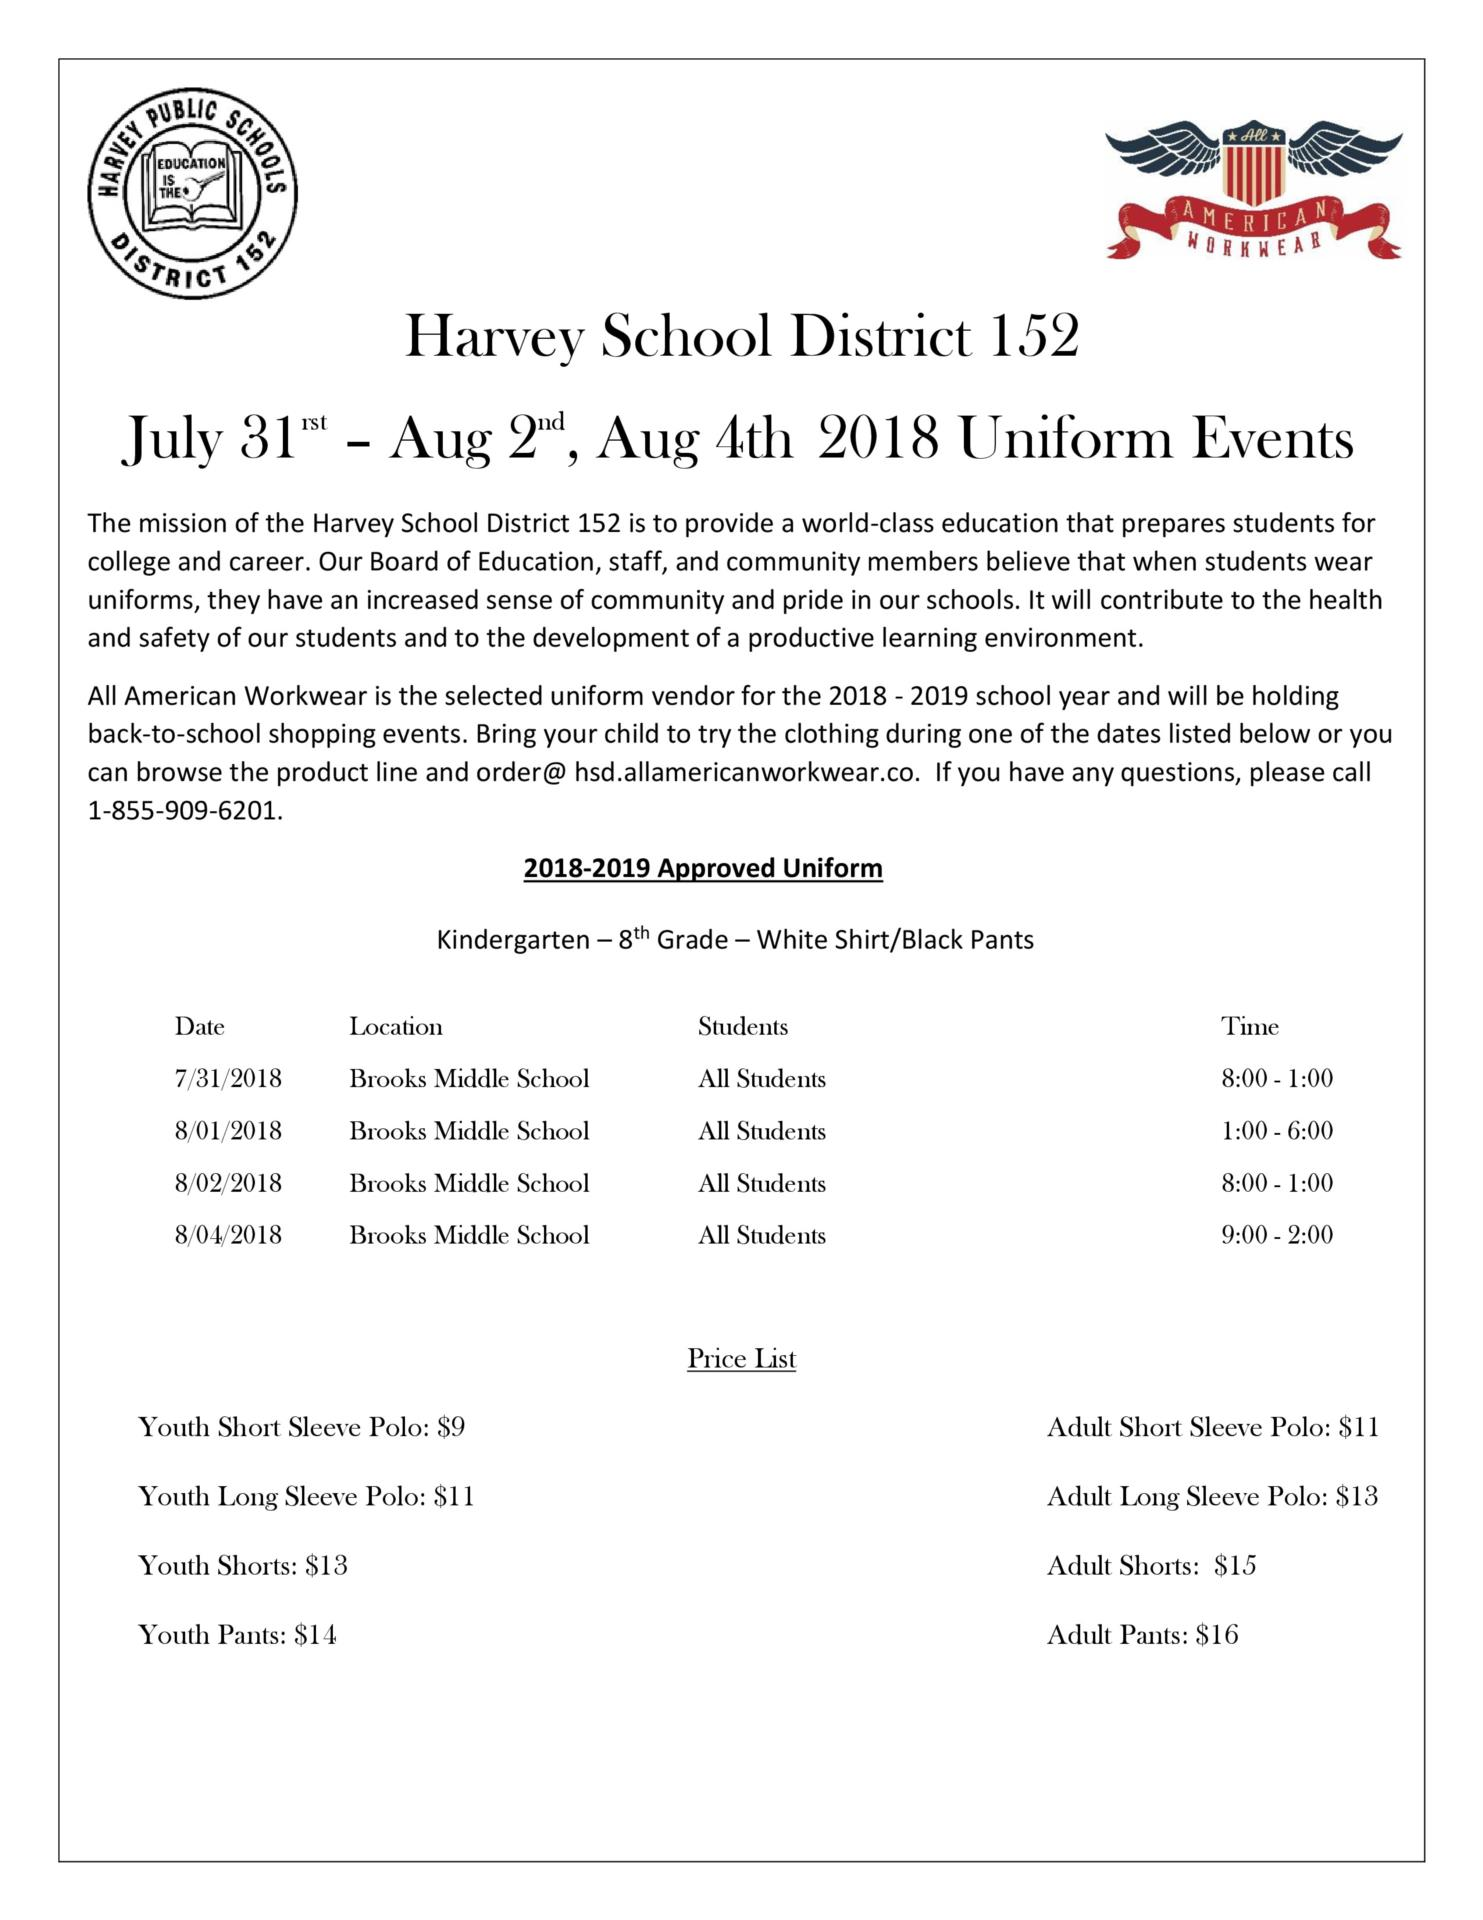 Uniform Events Information